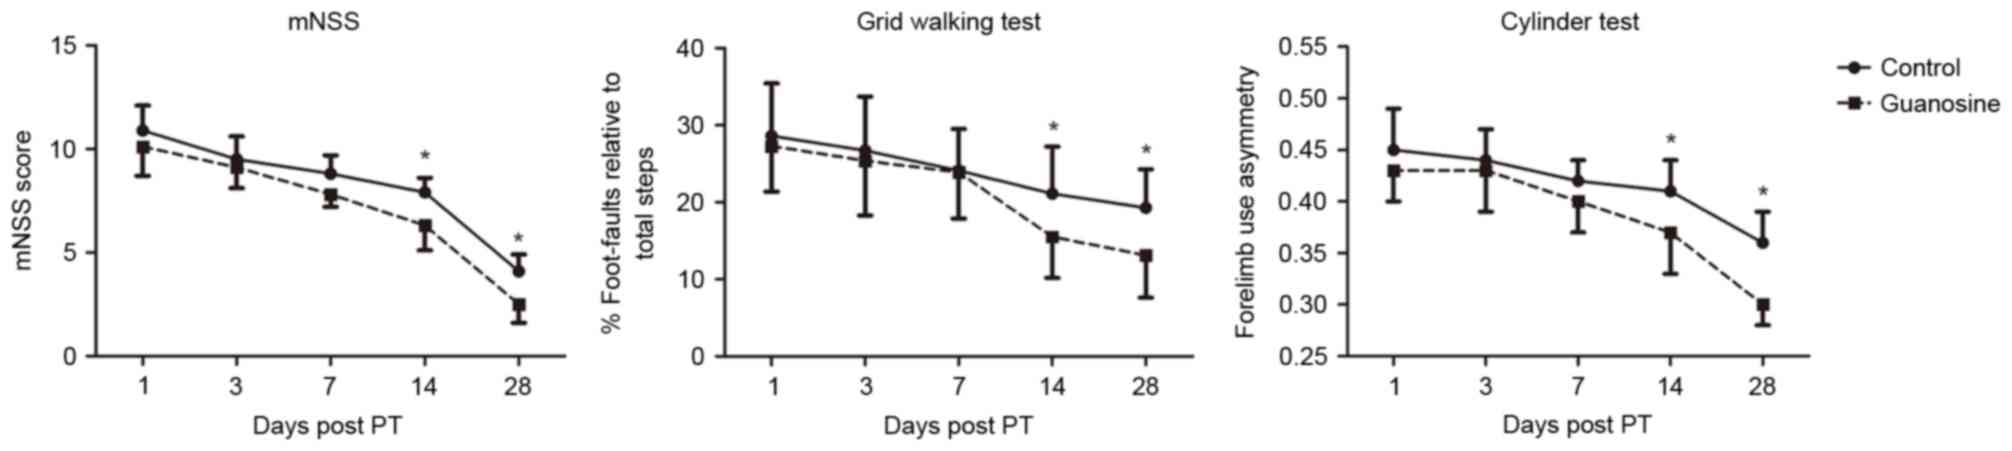 Delayed Administration Of Guanosine Improves Longterm Functional Herman Li Wiring Diagram Figure 2 Long Term Recovery Following Pt Induced Stroke No Significant Difference Was Detected On